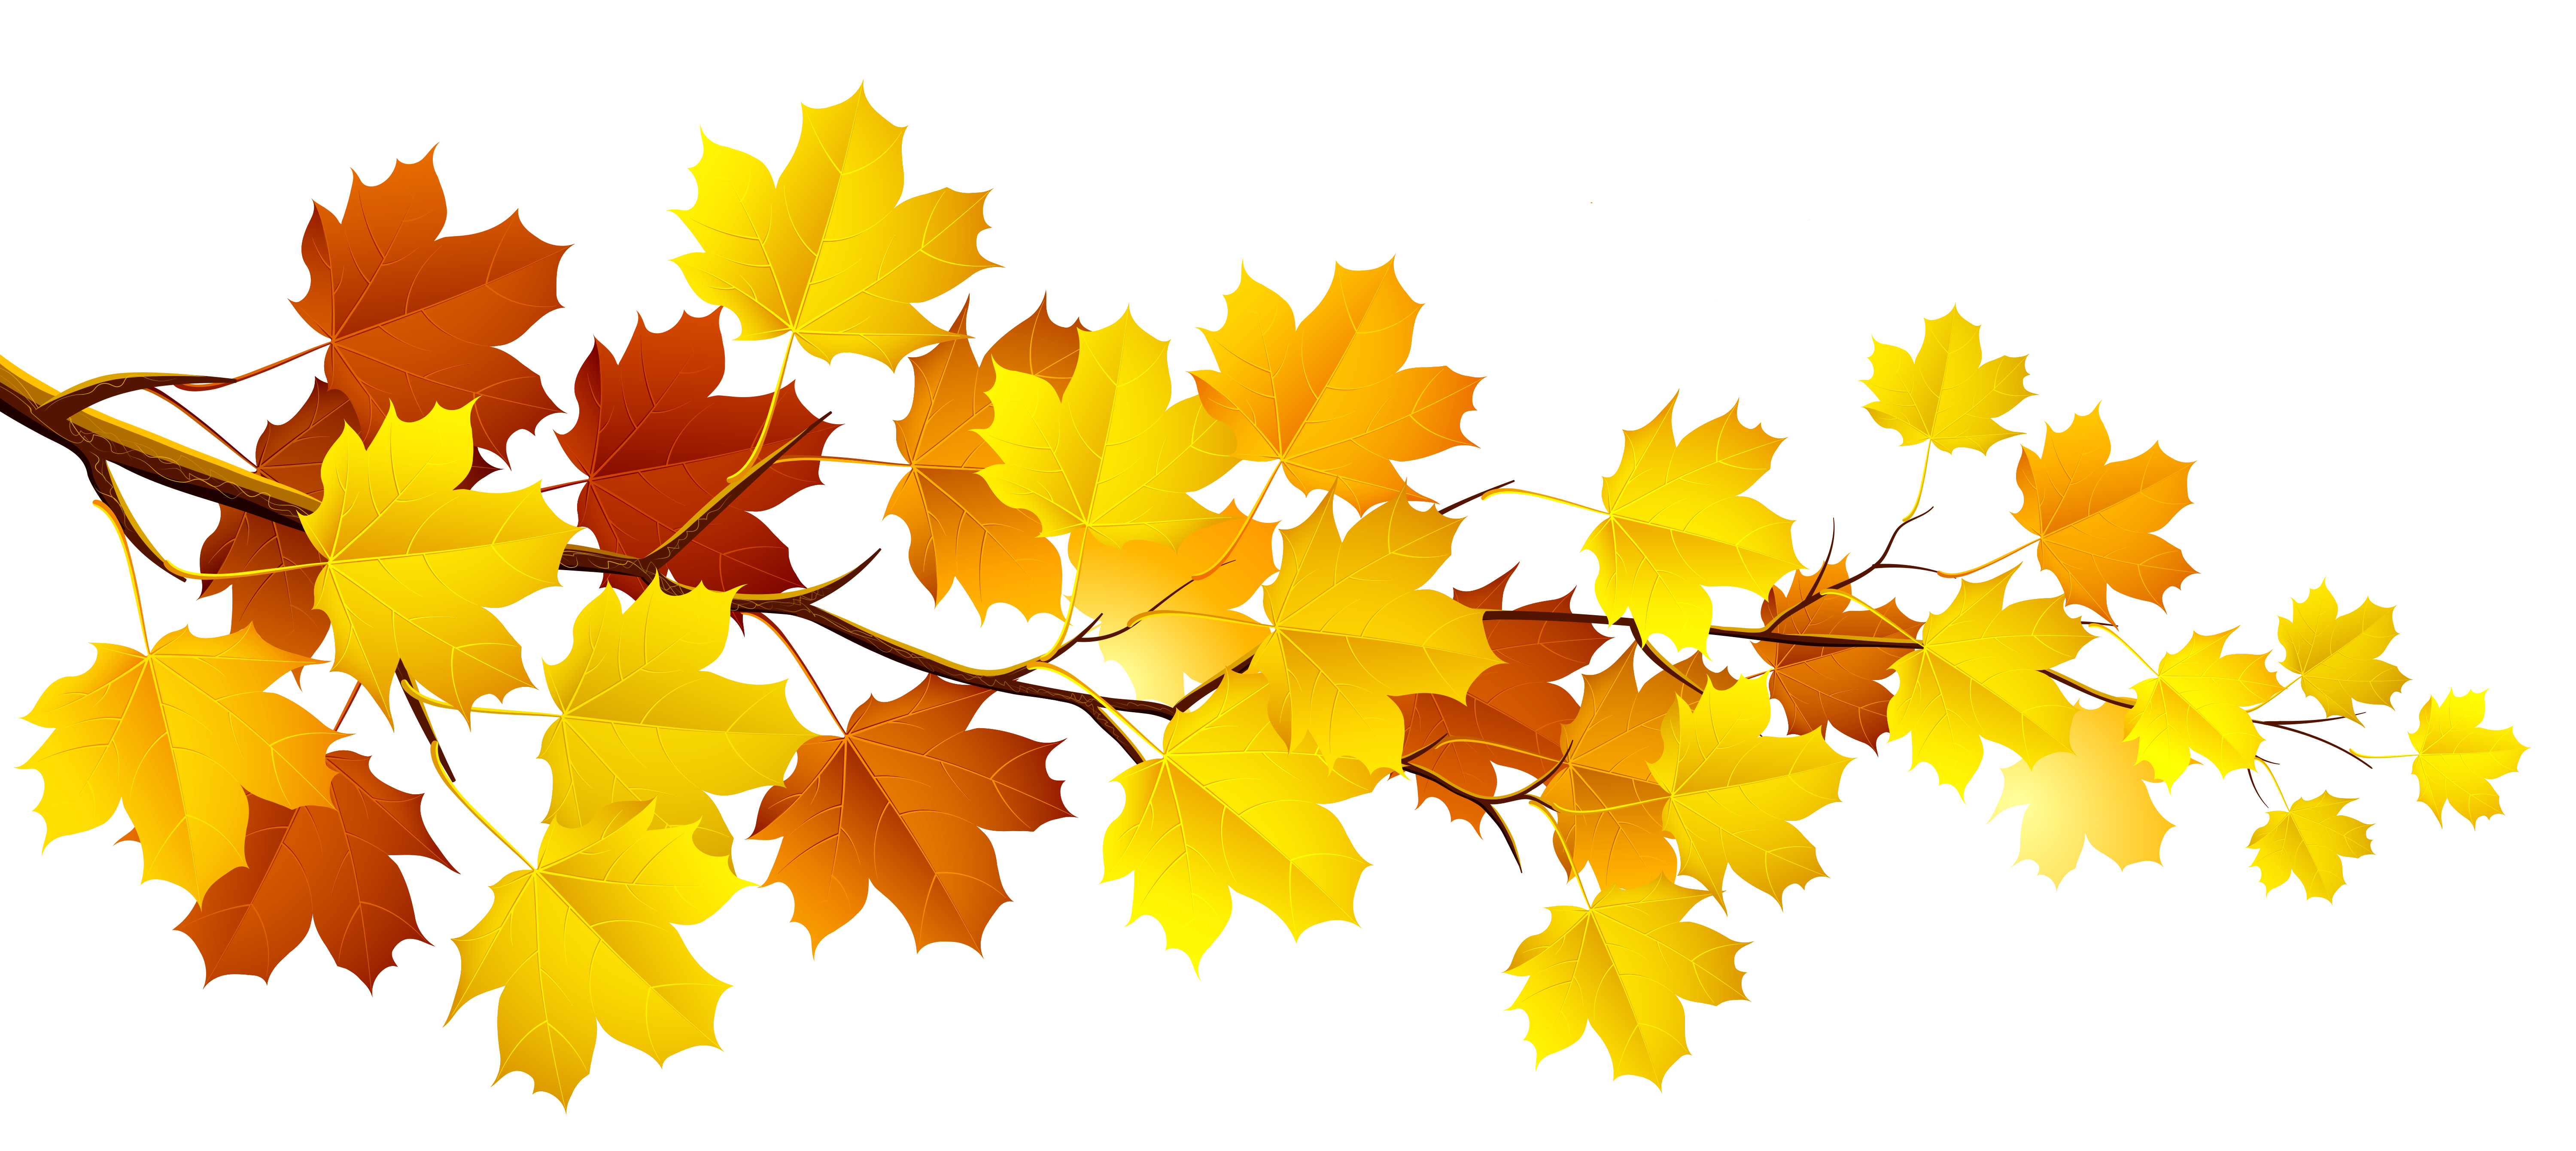 clipart black and white download Fall leaves free images. Maple clipart tree autumn